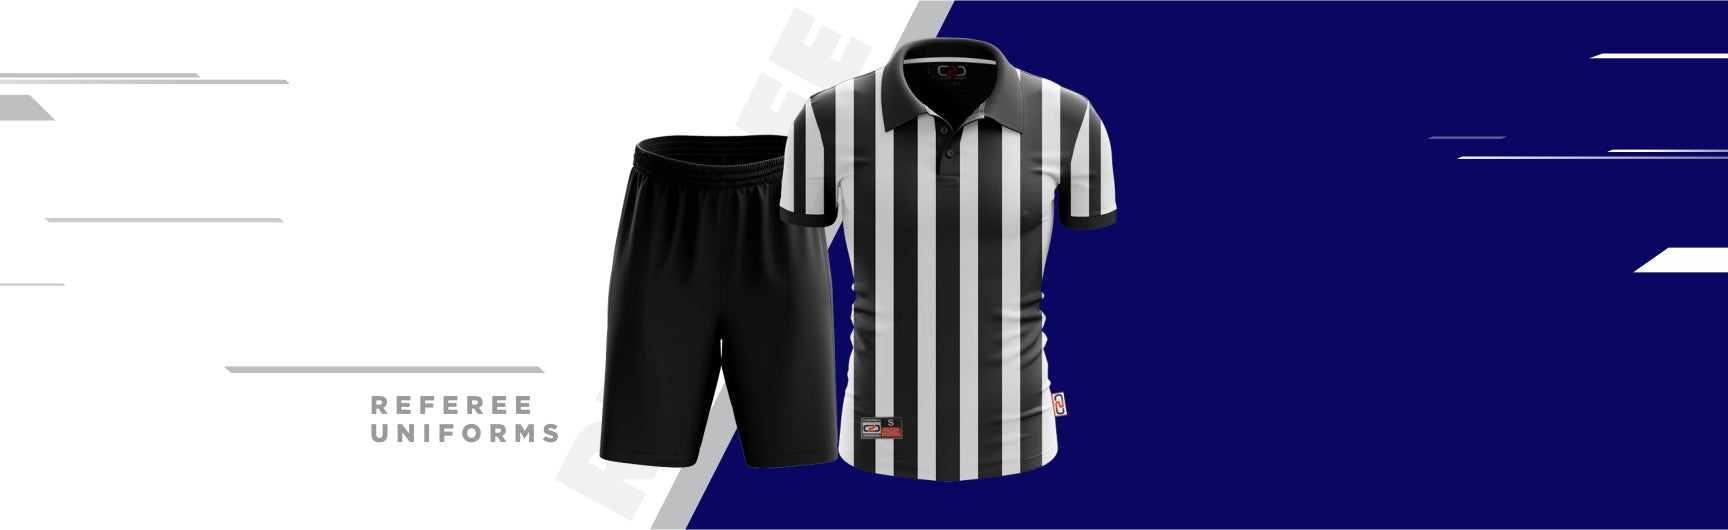 Referee Uniforms